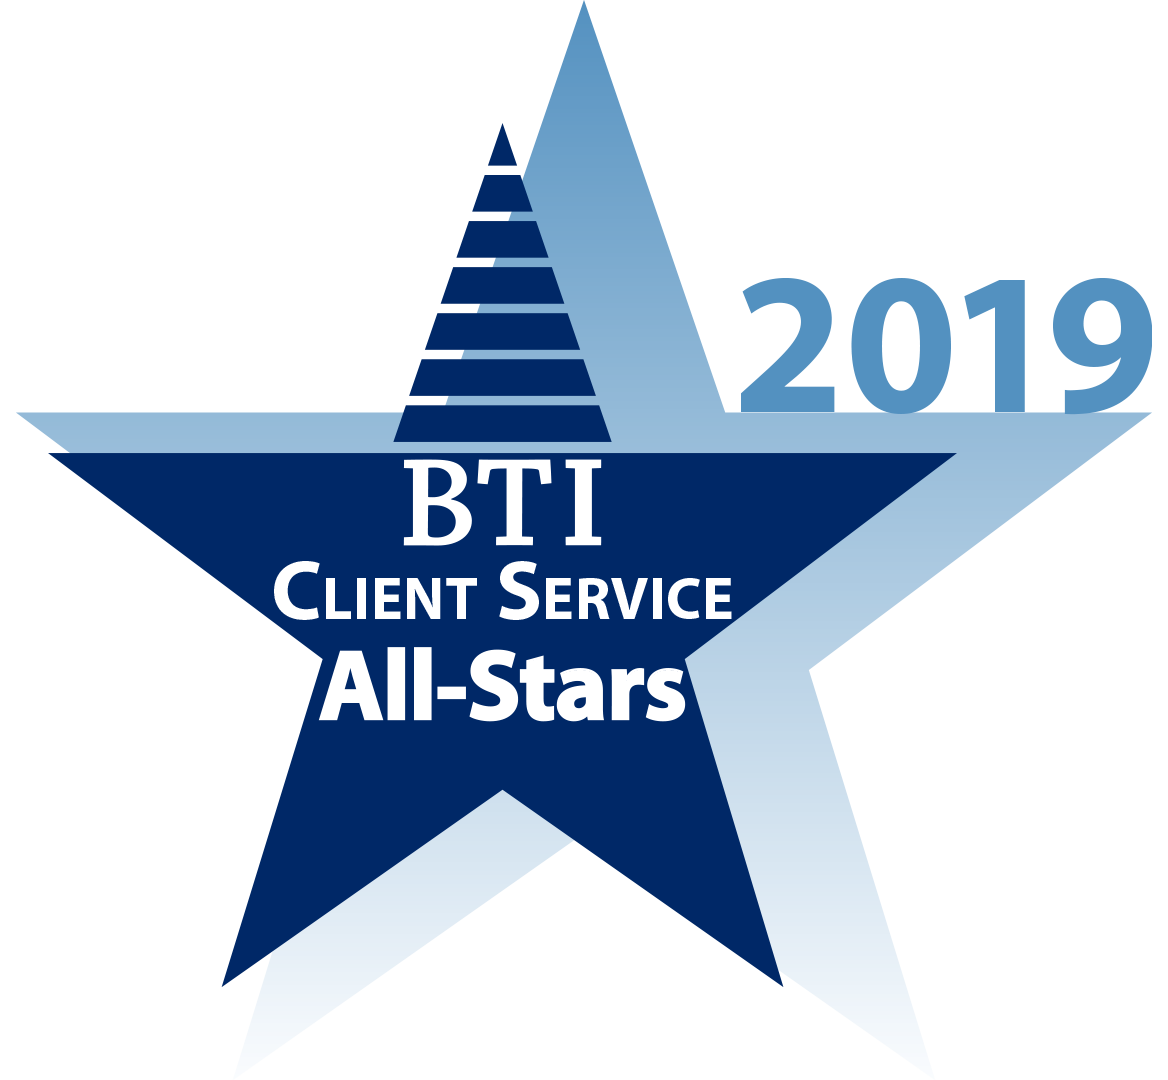 https://bticonsulting.com/bti-client-service-all-stars